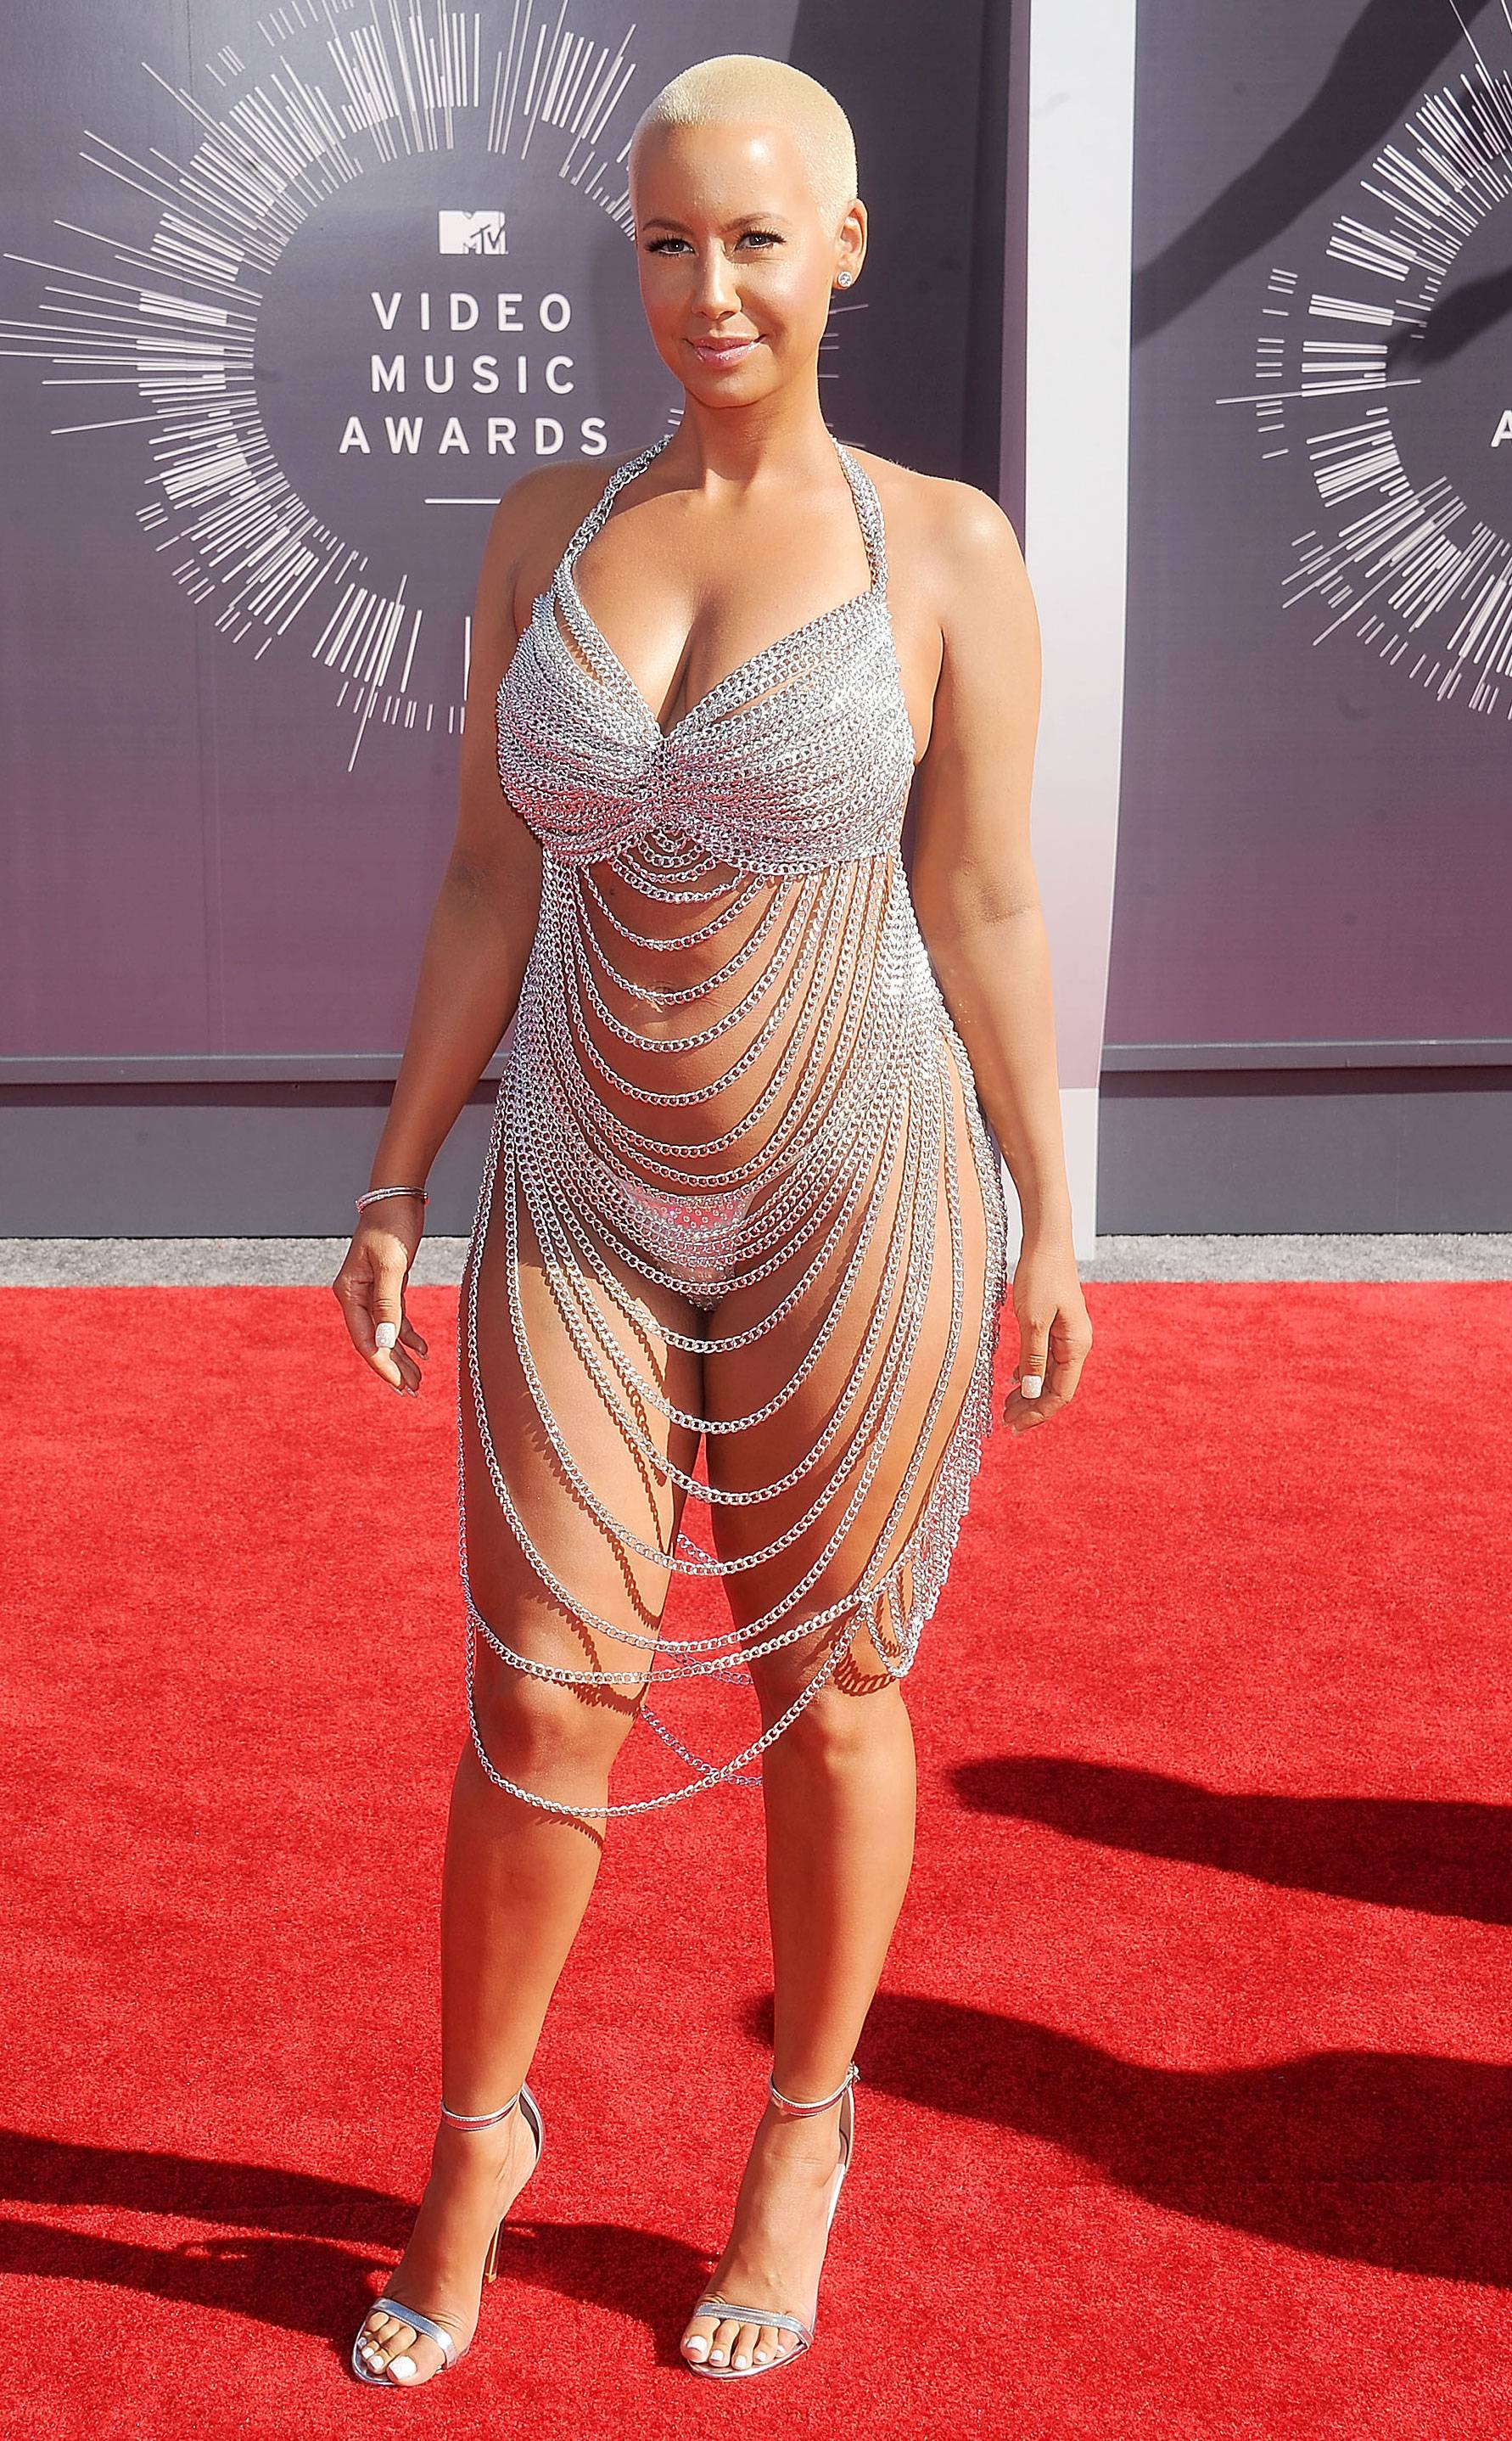 Amber Rose shows off her luminous skin in a bedazzled chain ensemble on the 2014 VMA red carpet.